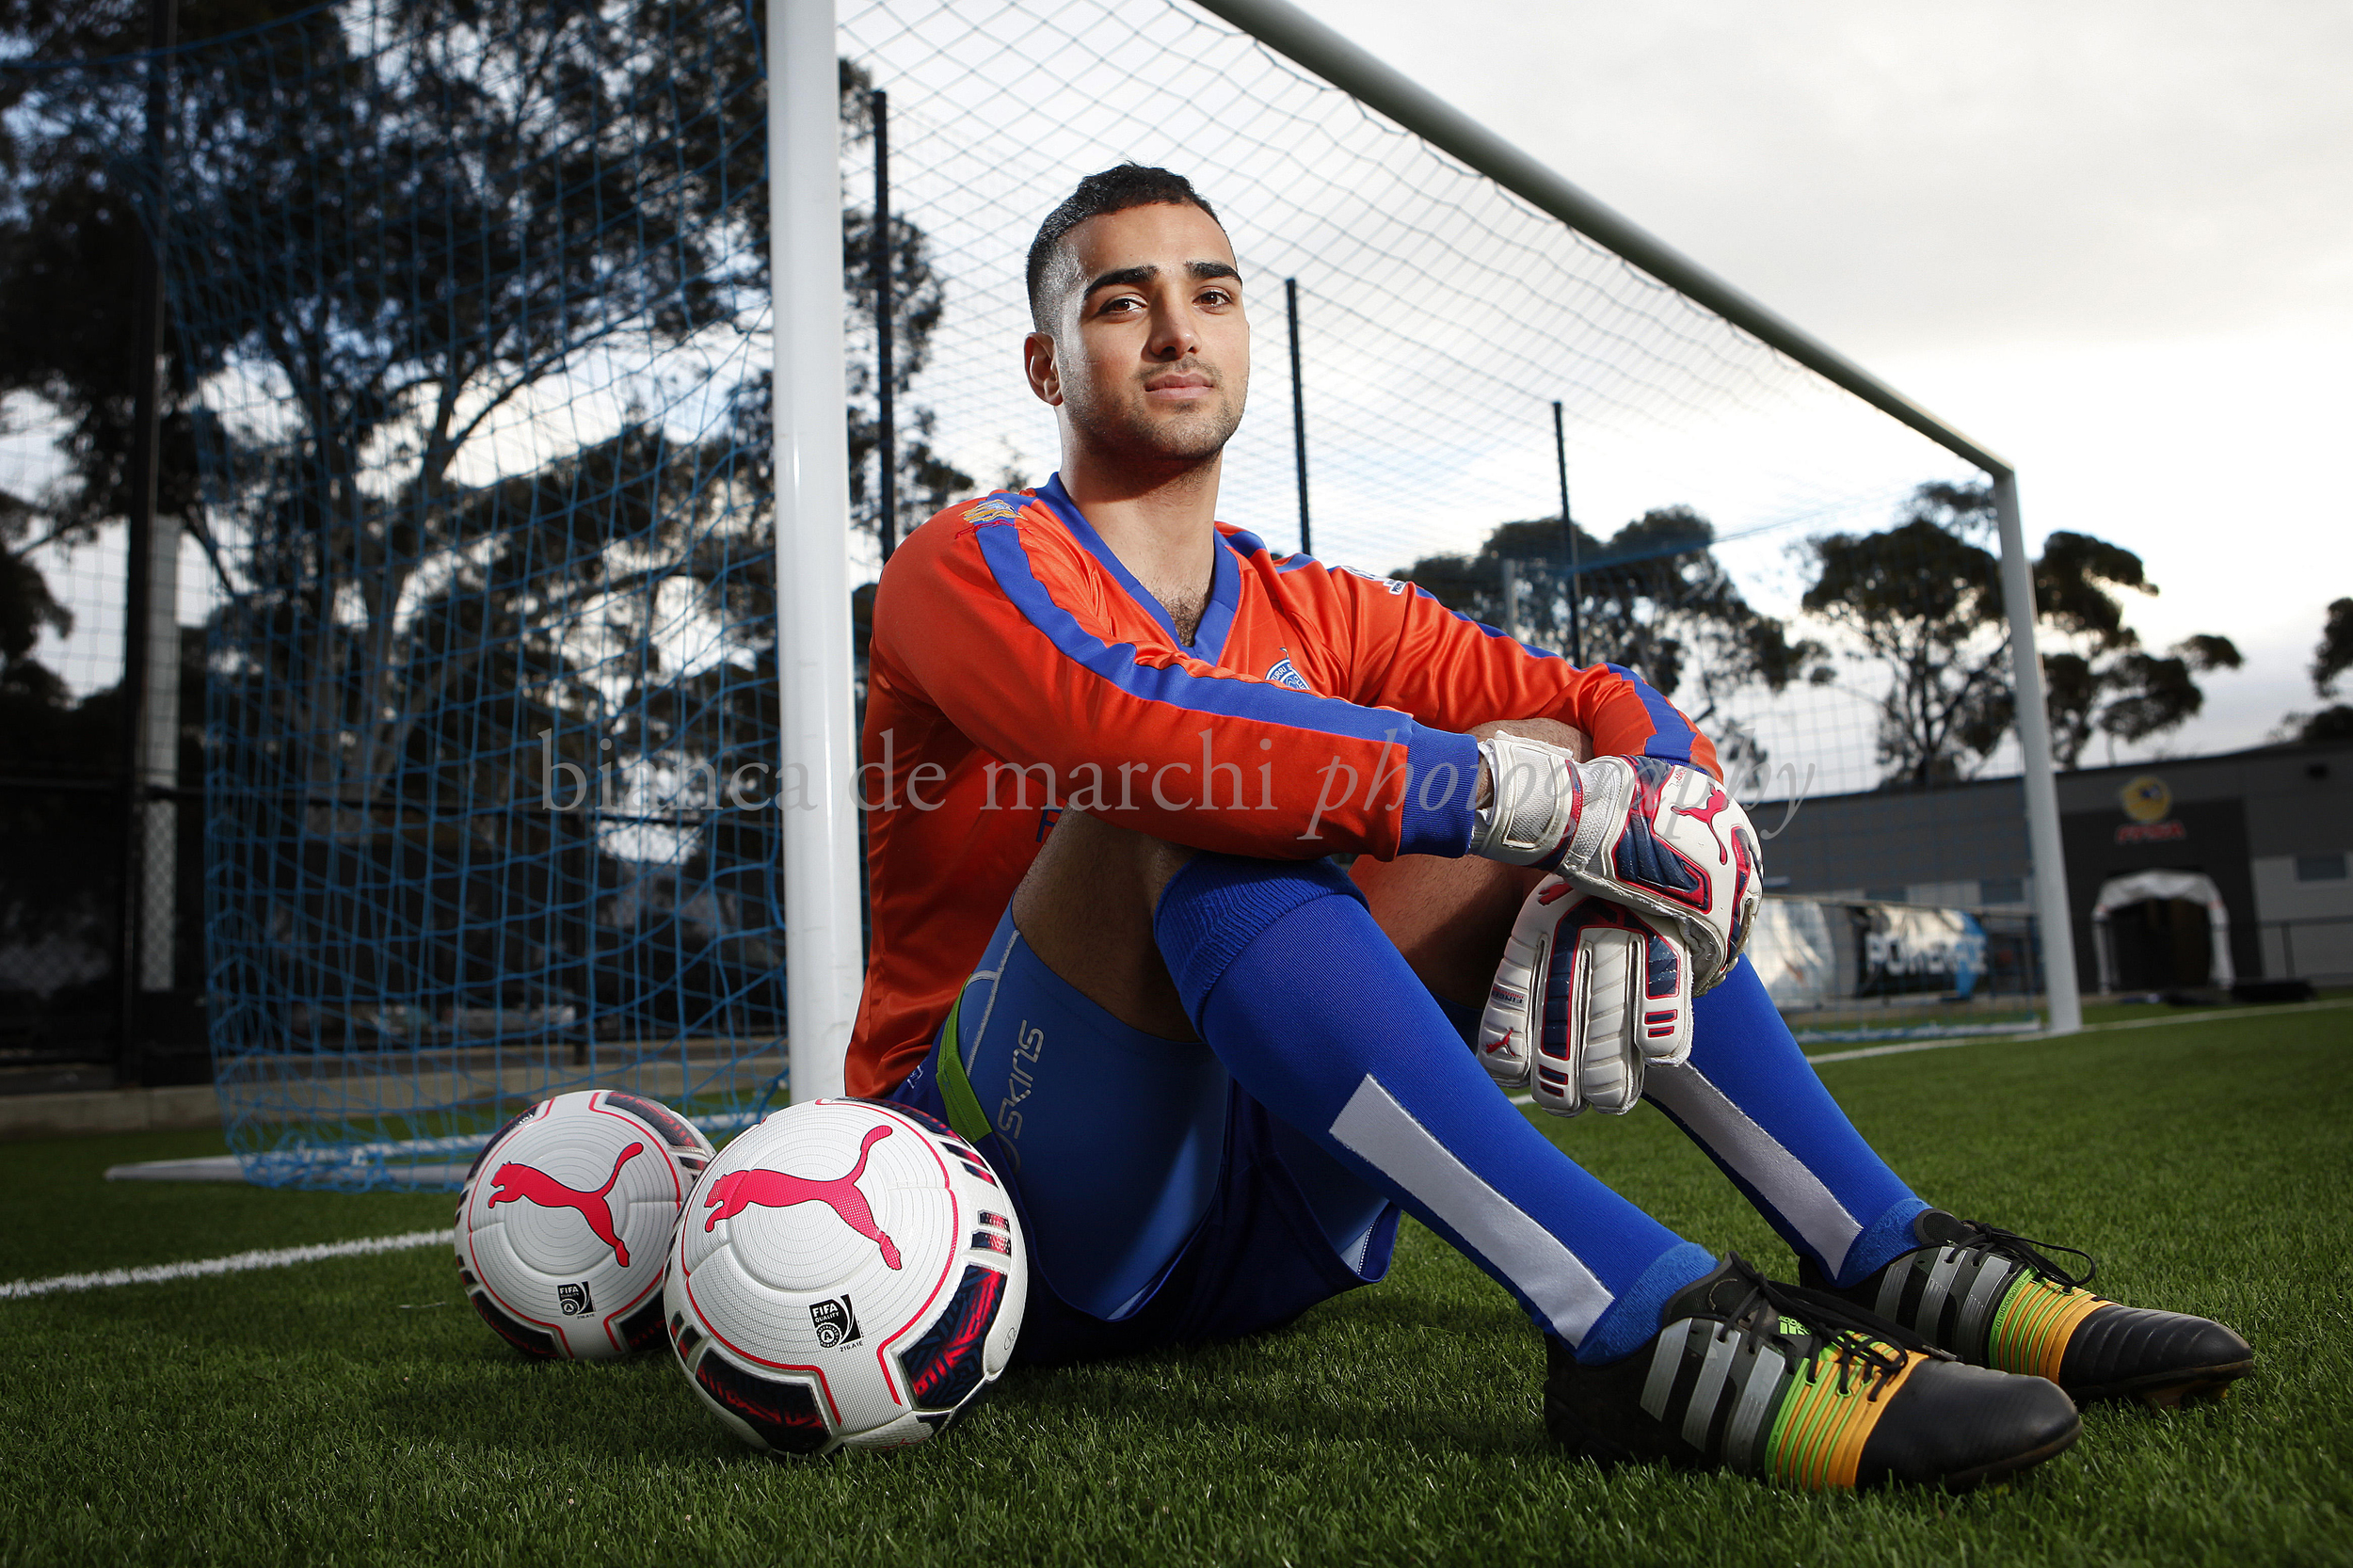 CHP_Export_124425245_Premier League soccer grand final preview. %5BPIC%5D Adelaide Blue Eagles goalkeepe.jpg